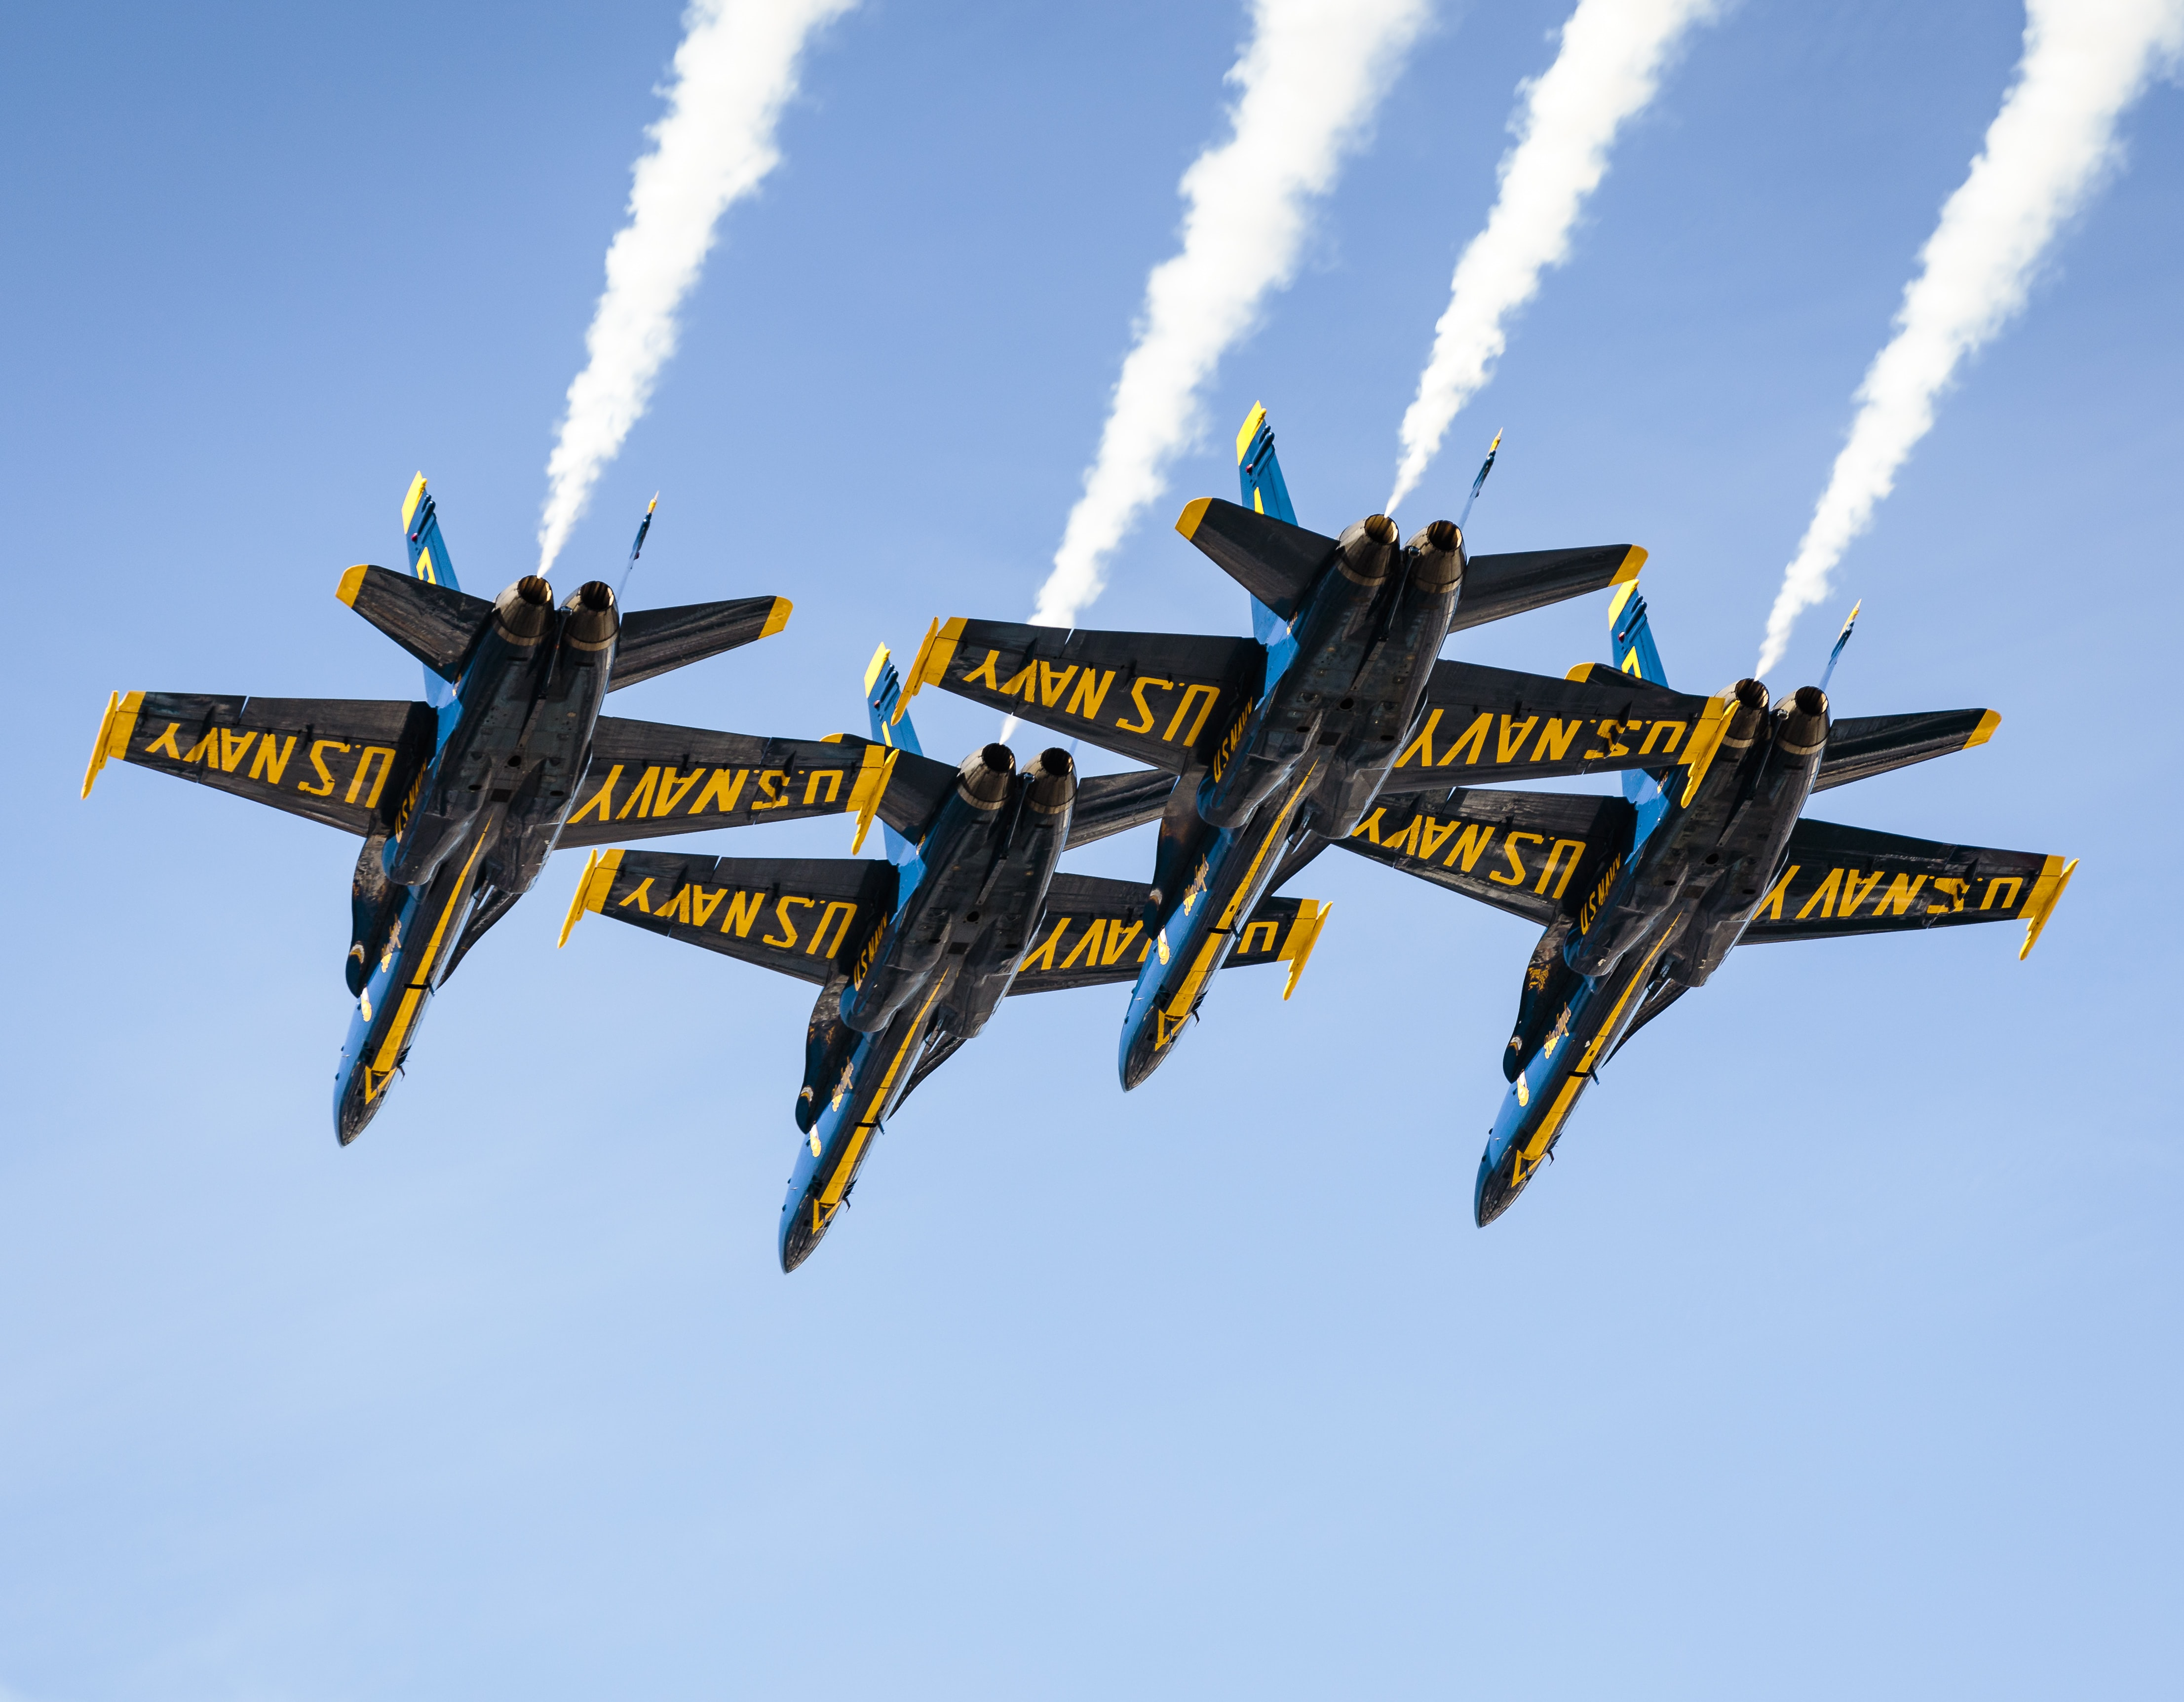 The US Navy jet fighter planes flying in an airshow in San Francisco